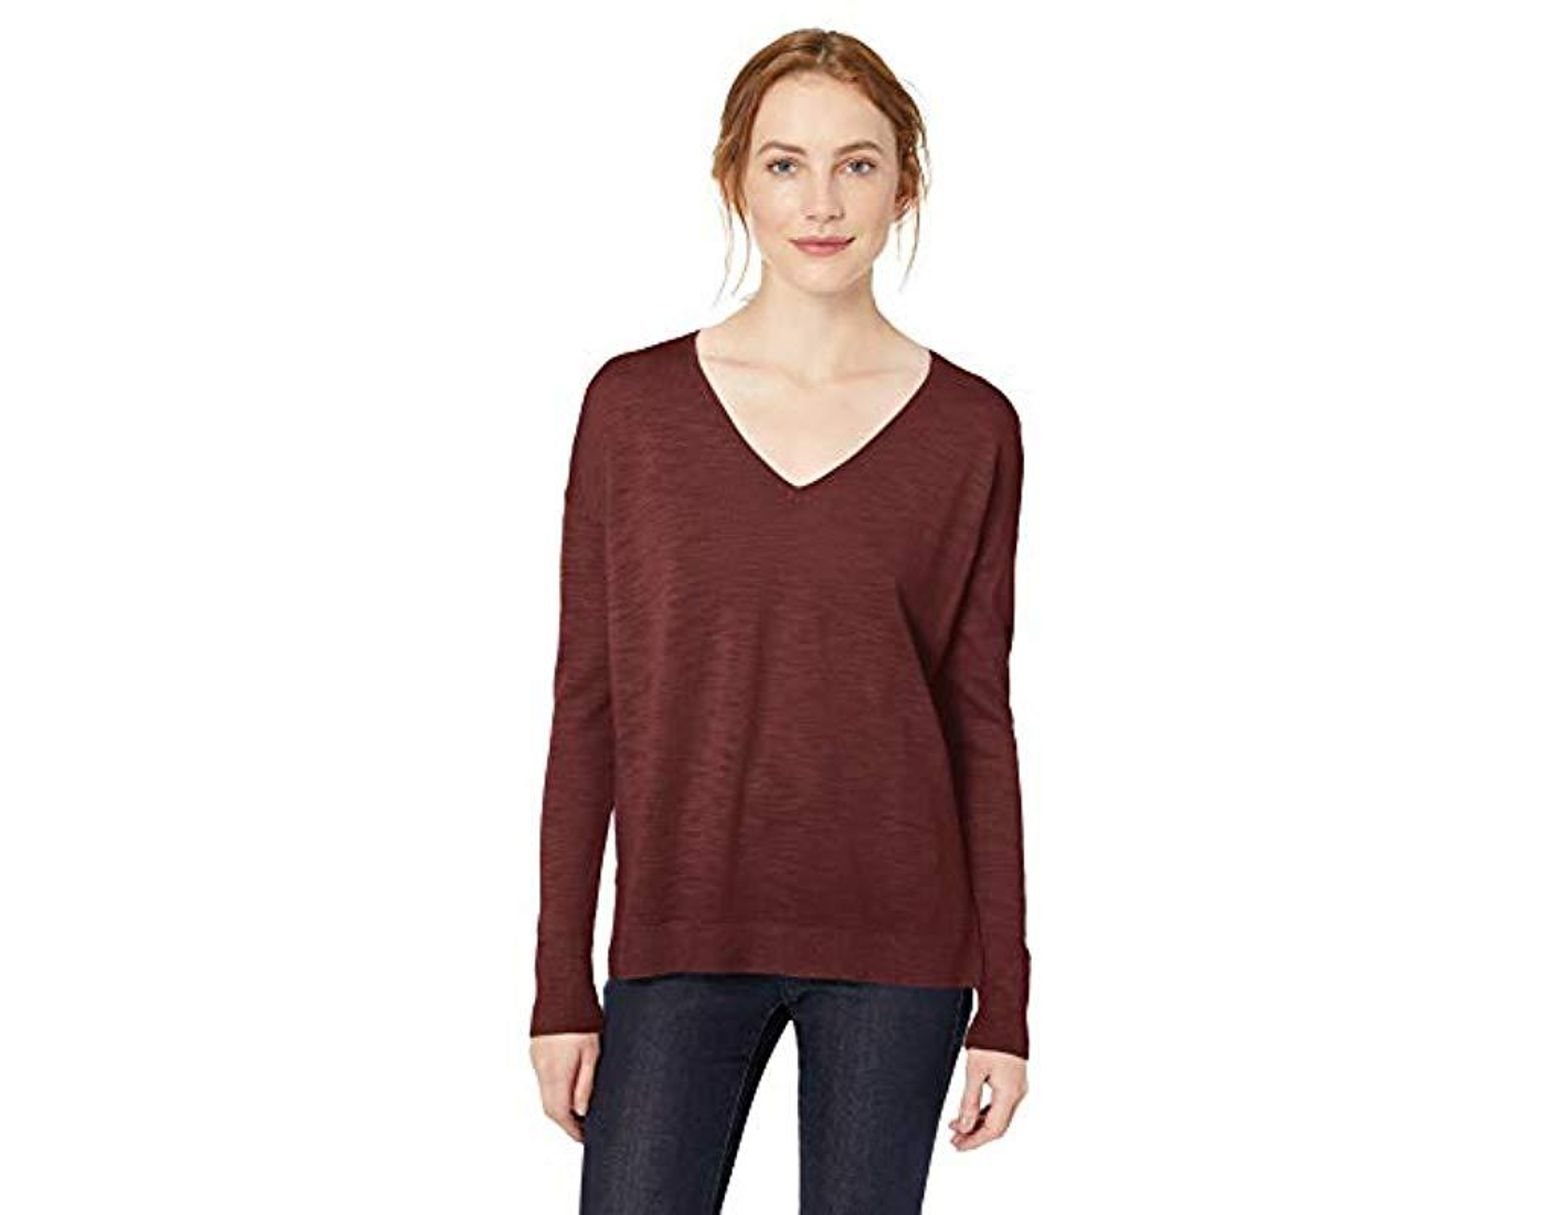 Brand Daily Ritual Womens Lightweight V-Neck Tunic Sweater